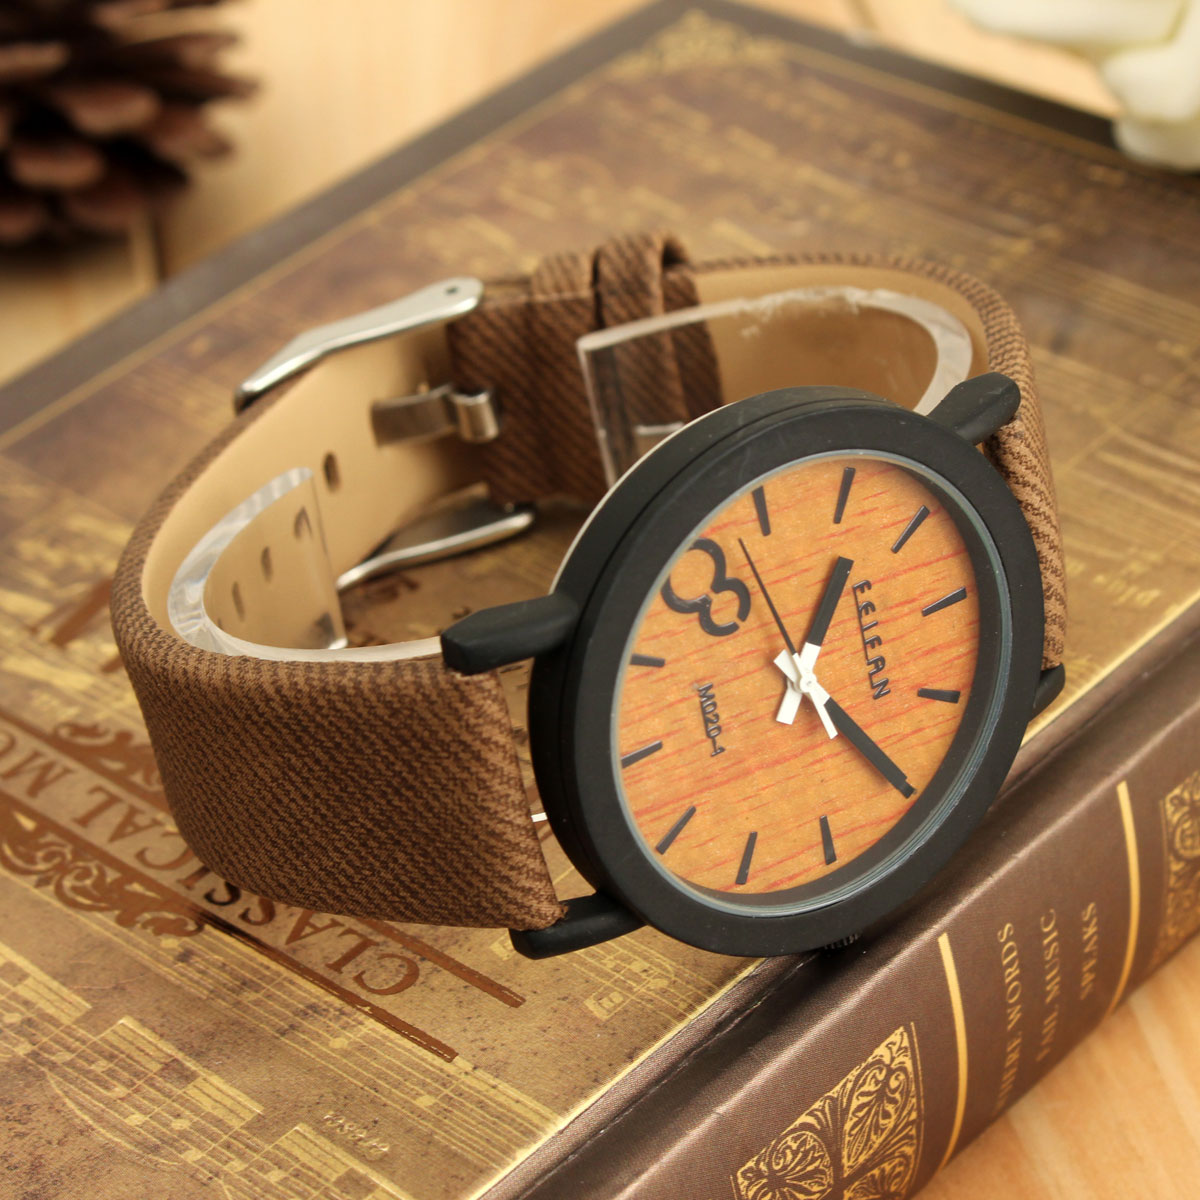 Unisex Fashion Vintage Wooden Color Leather Strap Quartz Round Dial Wrist Watch | eBay